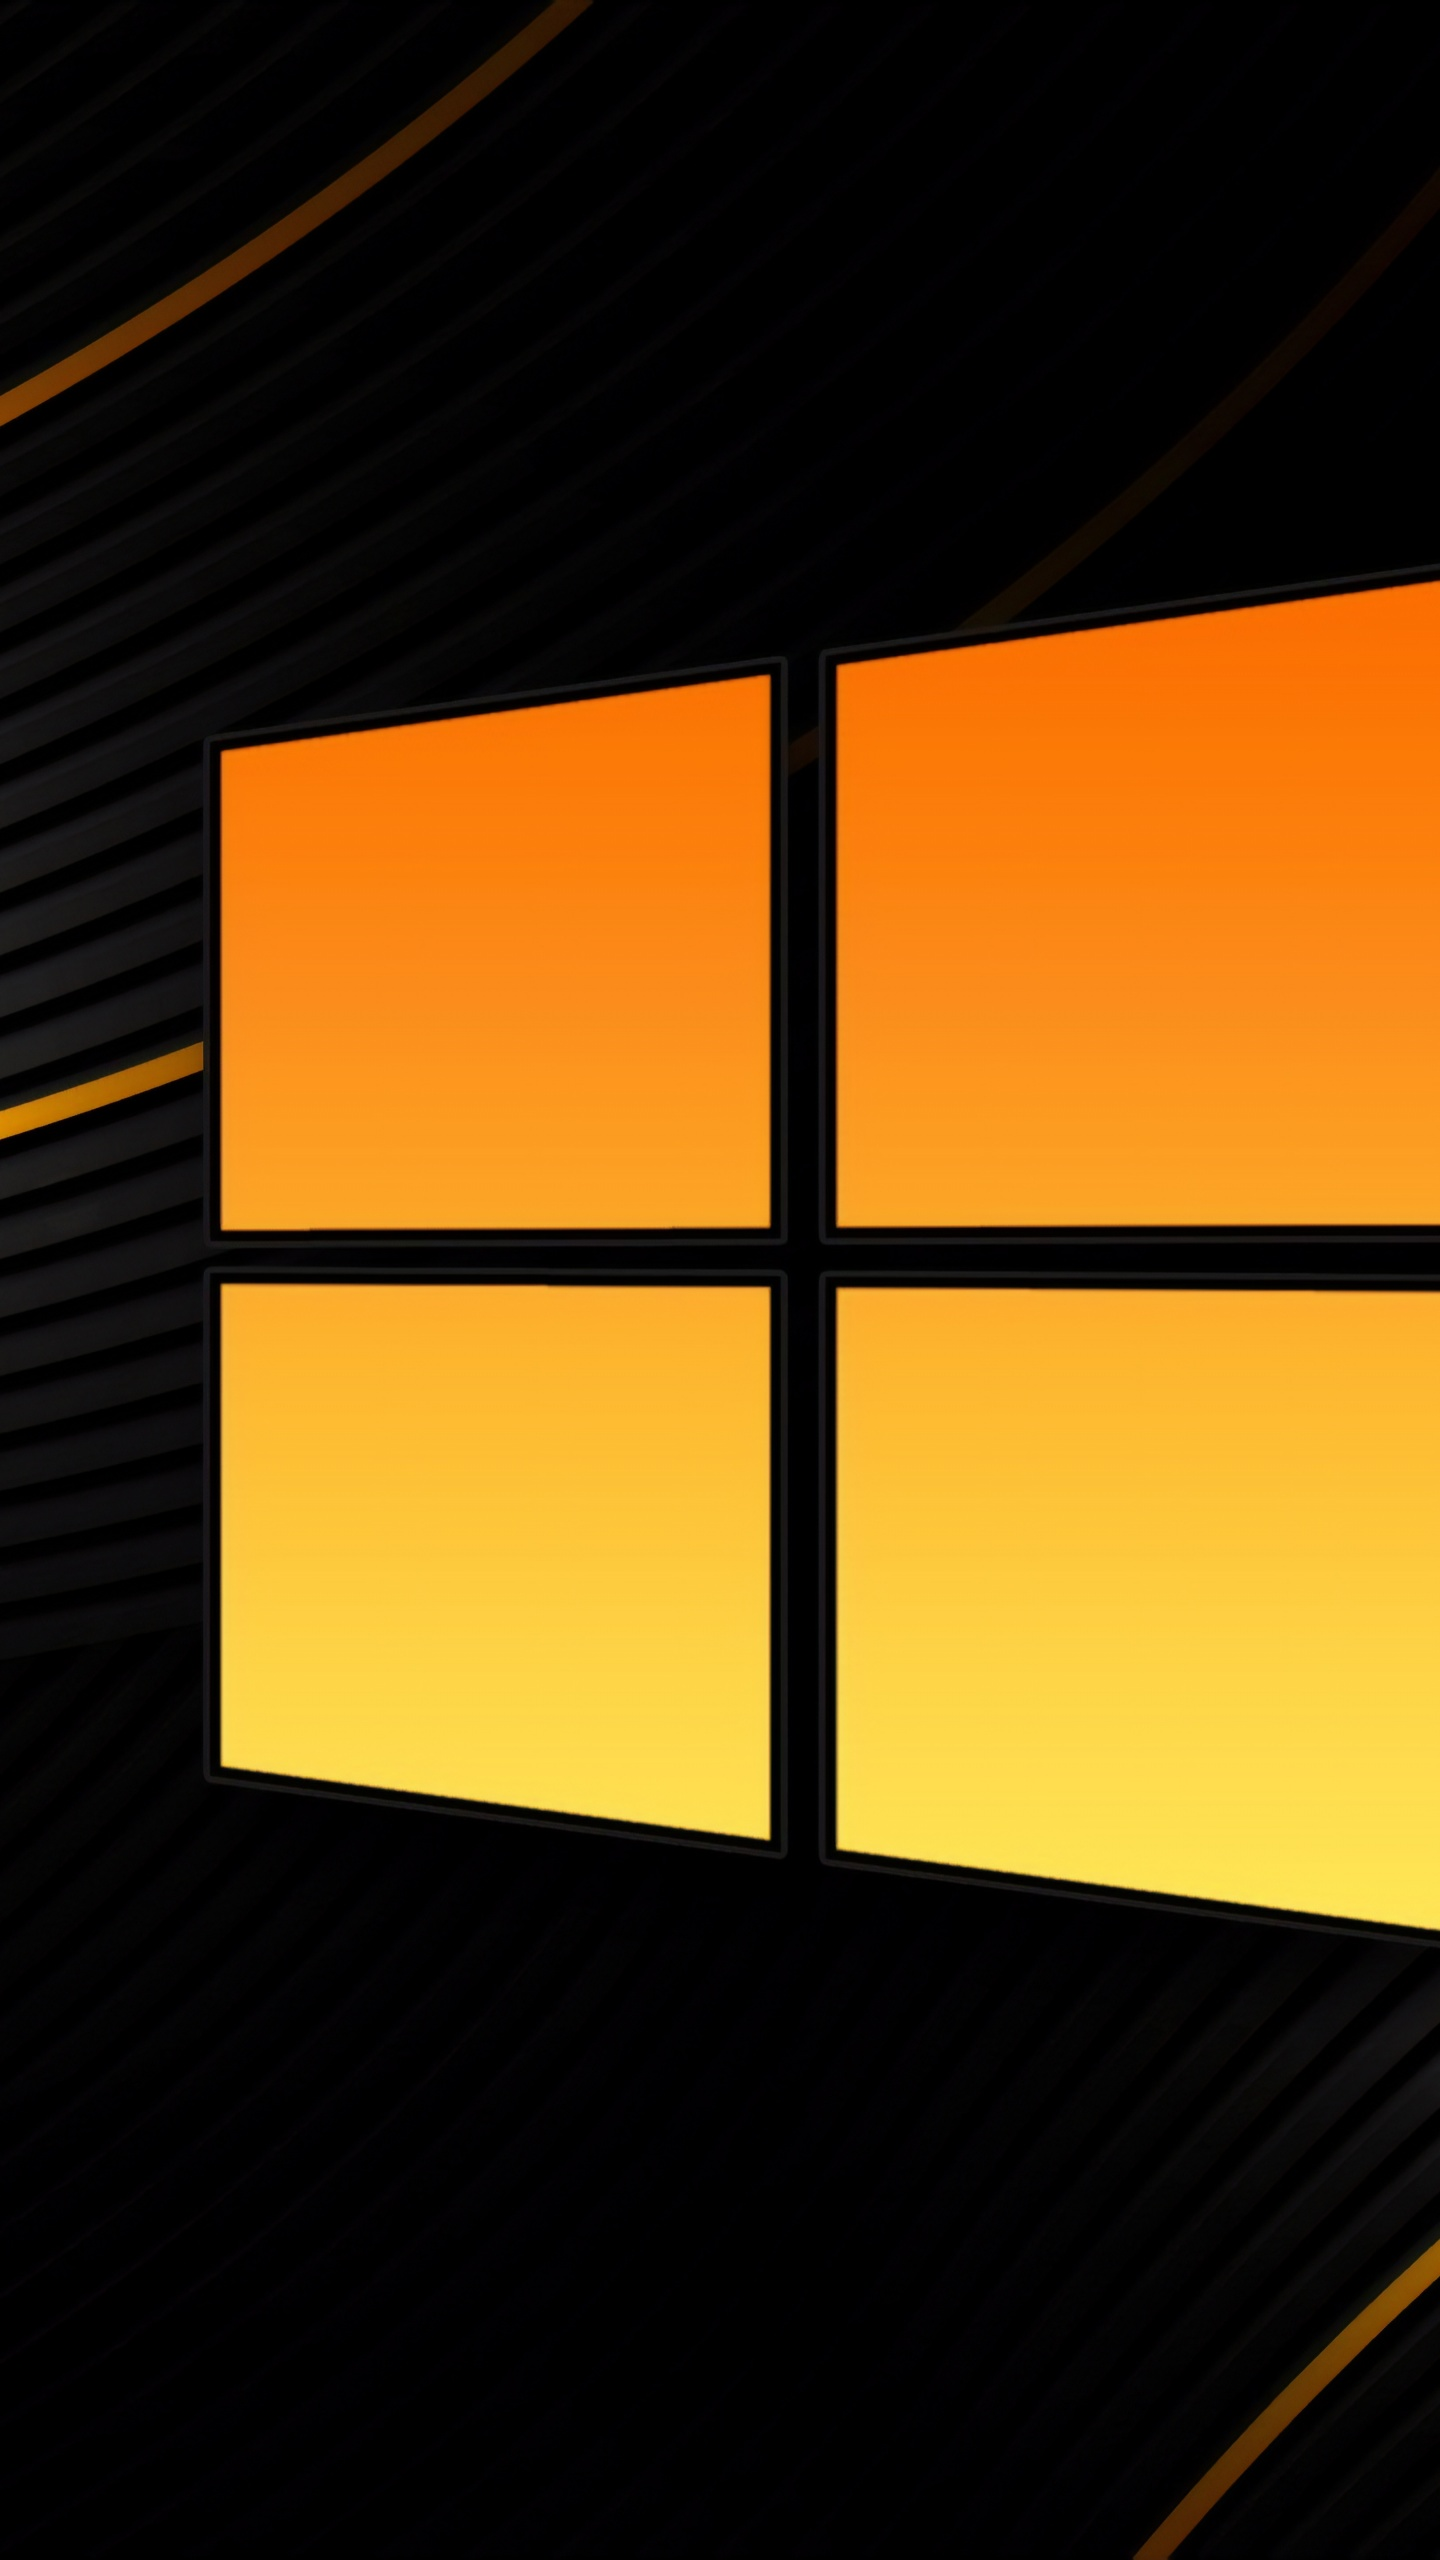 Windows 10 4k Wallpaper Black Background Abstract Yellow 5k 8k Technology 1559